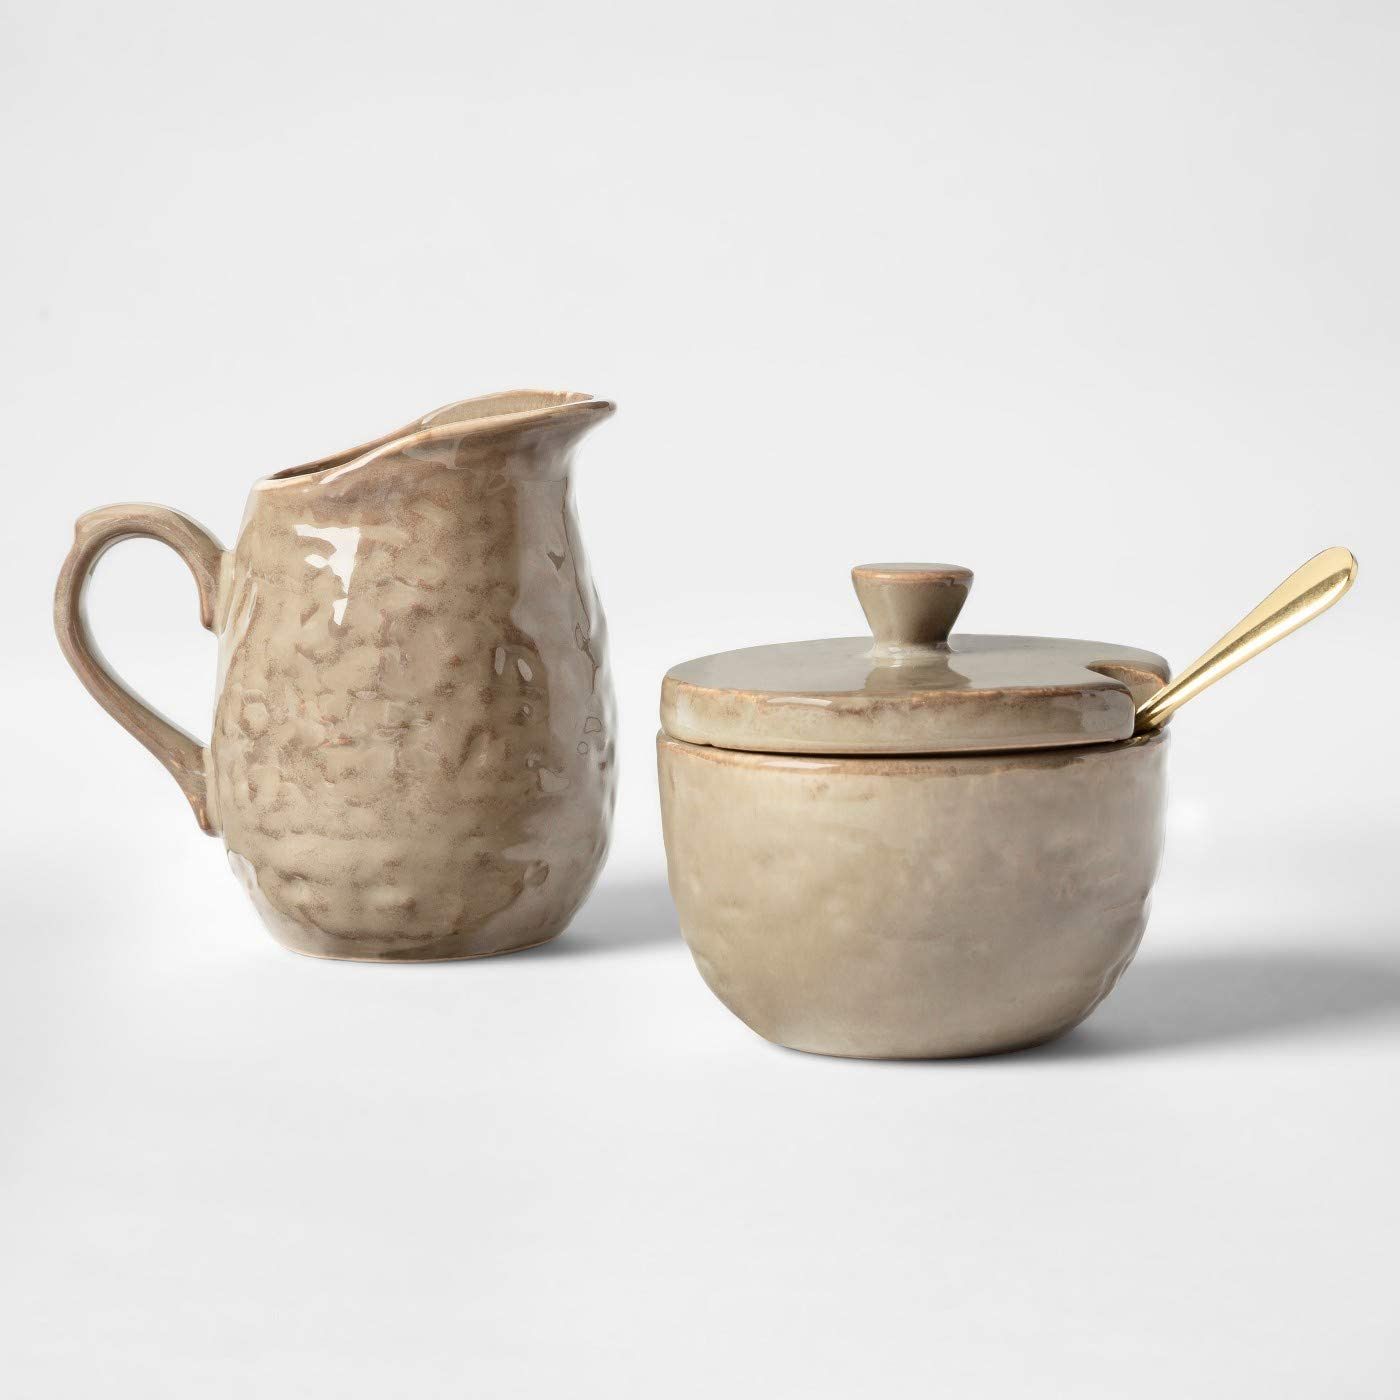 Stoneware Coffee Creamer and Sugar Bowl with Metal Spoon Bundle   Cravings by Chrissy Teigen Kitchenware